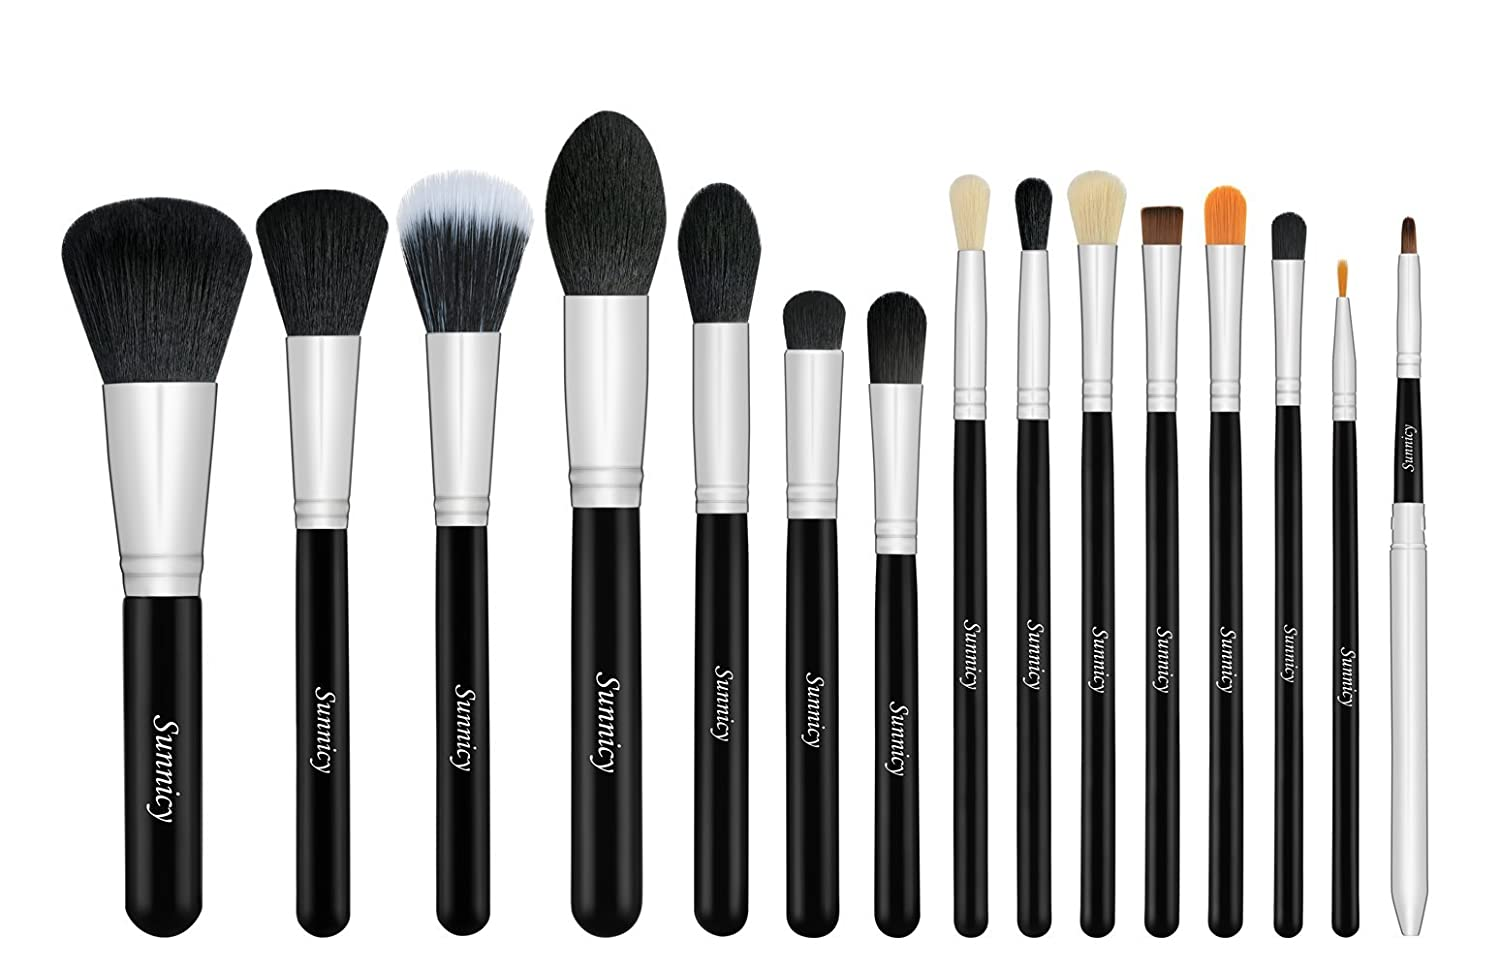 professional makeup brush set. professional makeup brush set - foundation concealer blending blush face powder eyebrow \u0026 eyeshadow cosmetics tool kit -15pcs black silver: